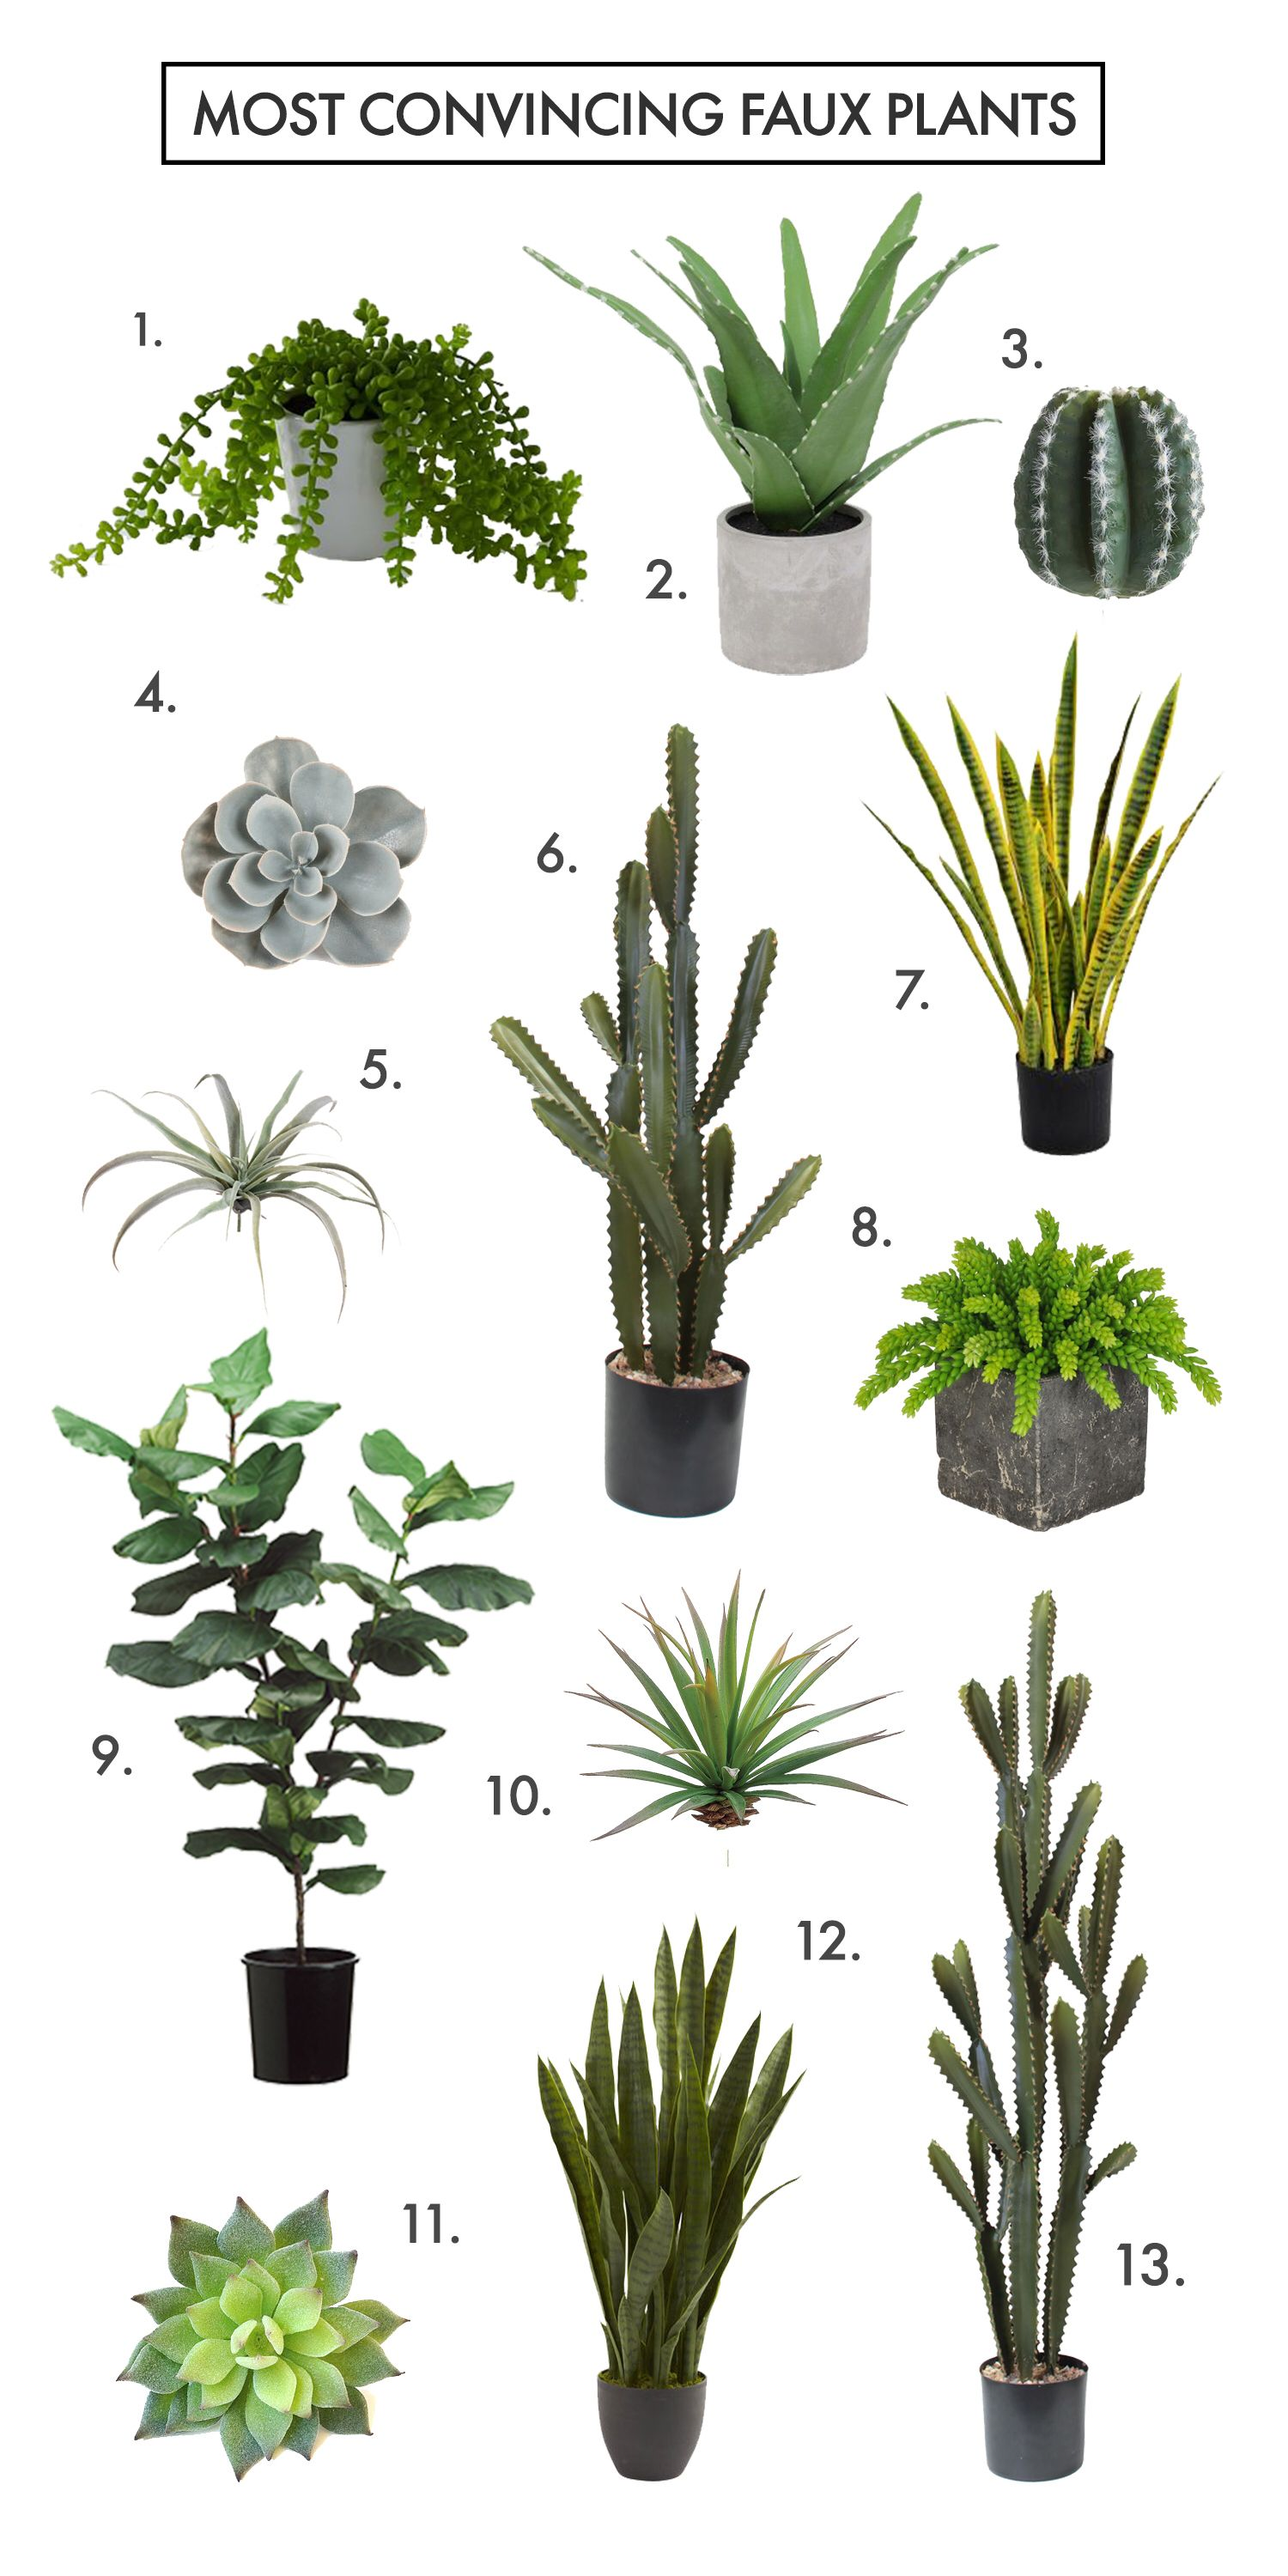 Pin by Jan Walther on Condo at home   Pinterest   Plants, Planters ...